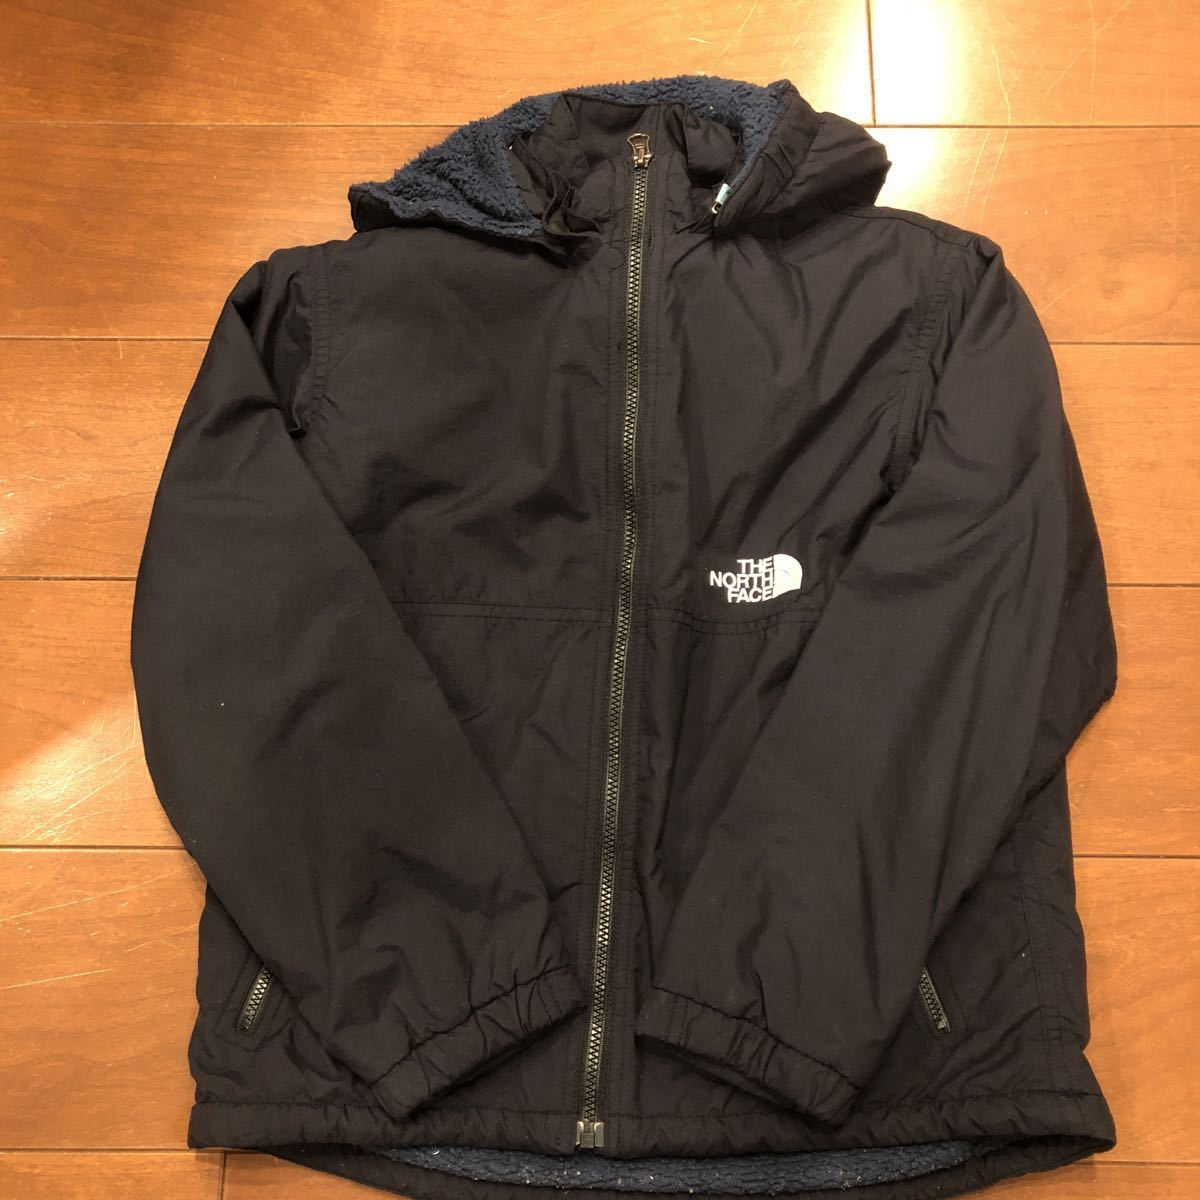 THE NORTH FACE ザ・ノース・フェイス コンパクトノマドジャケット Compact Nomad Jacket キッズ kids 140 black 黒